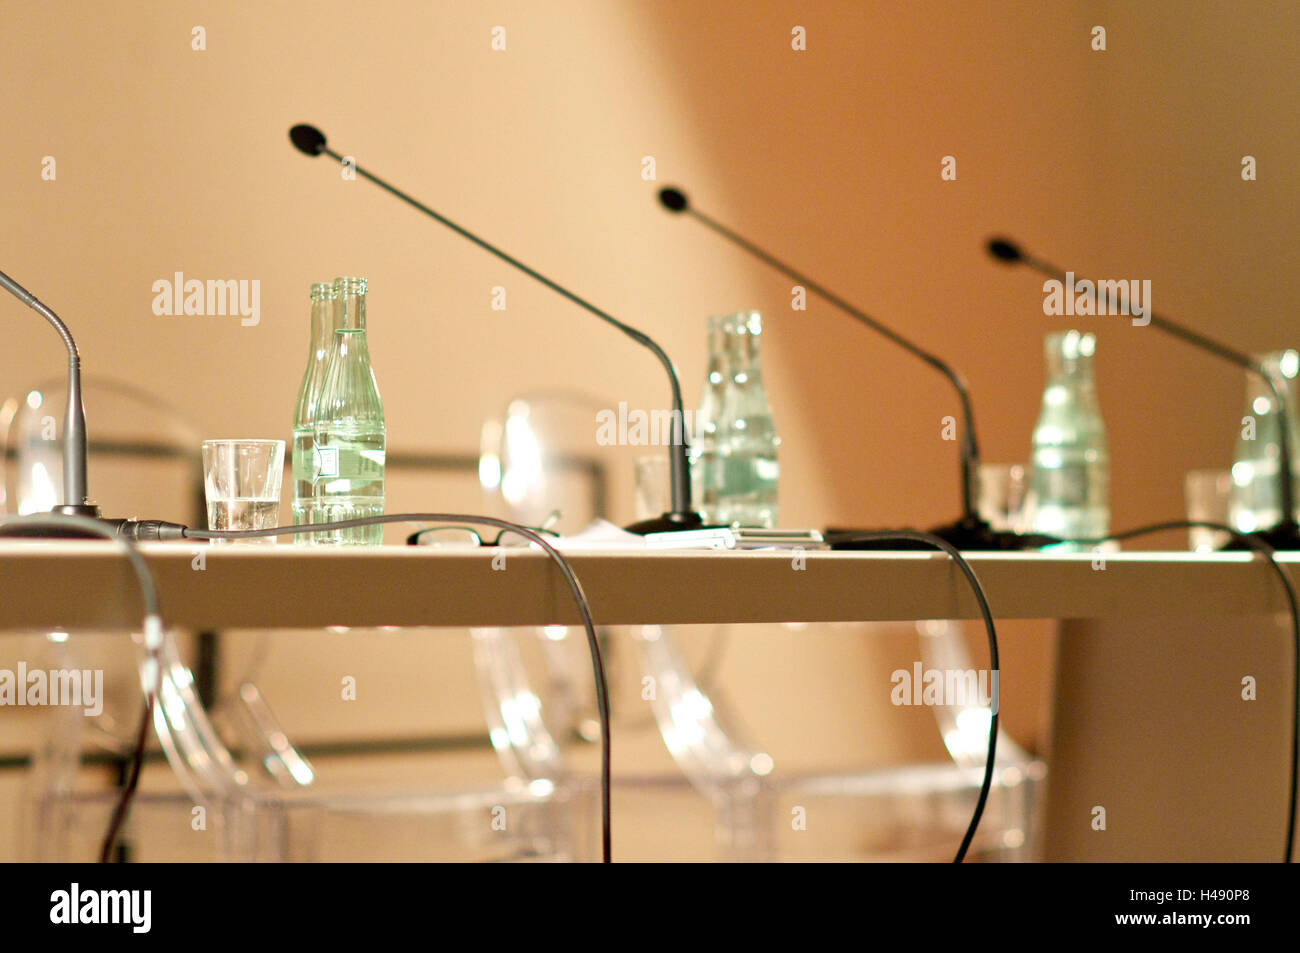 Conference table, microphones, water bottles, - Stock Image